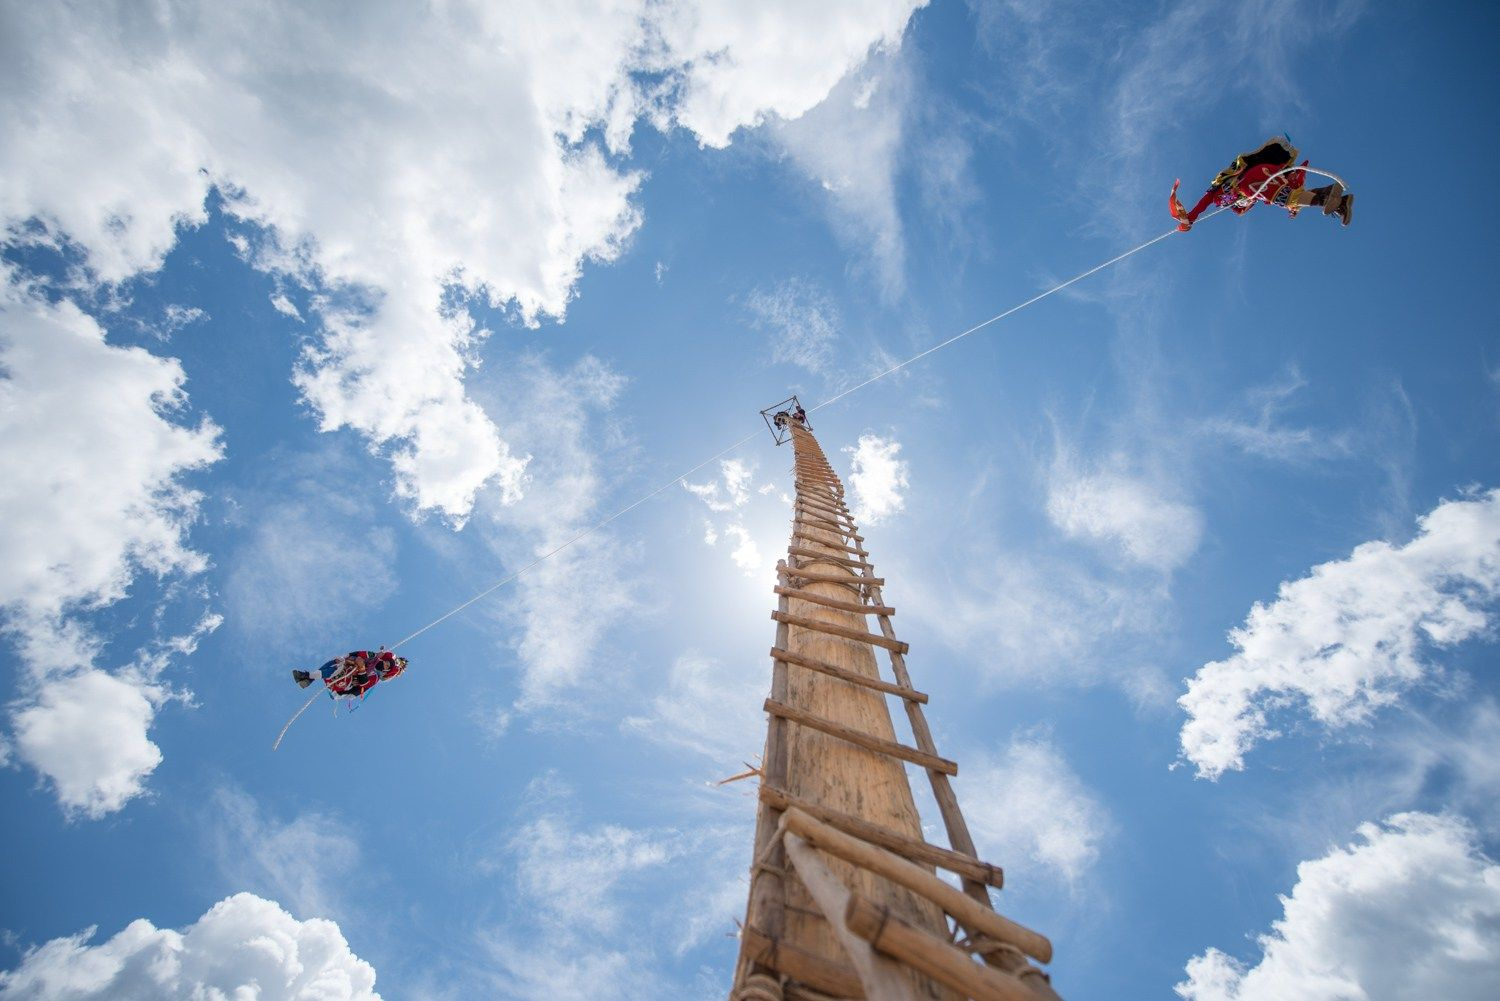 Angel Dancers Descend From The 40m Tall Tree Photo Santiago  # Muebles En Kaqchikel